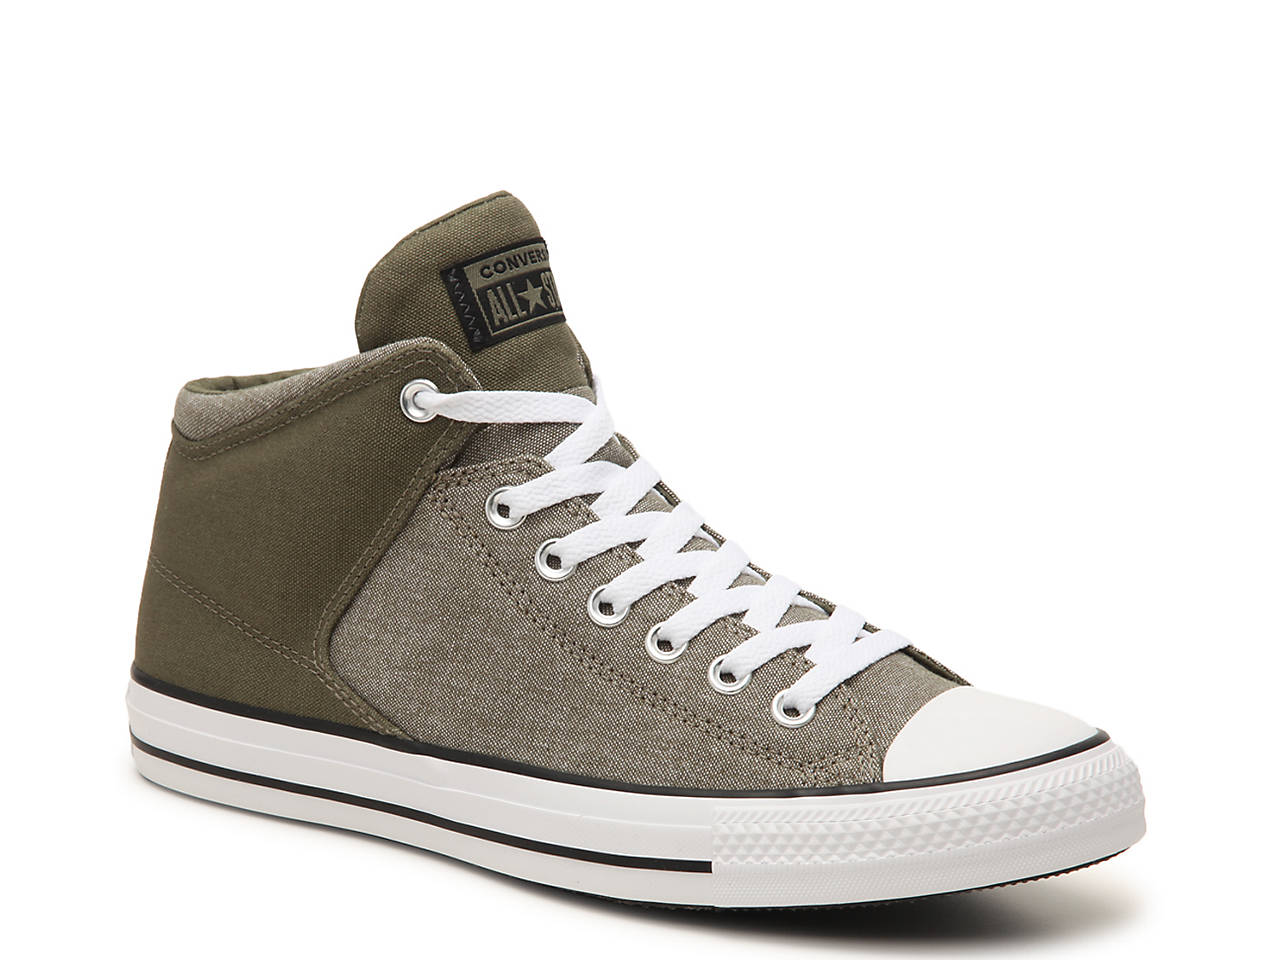 2d2f0f64dfe Chuck Taylor All Star Hi Street High-Top Sneaker - Women's